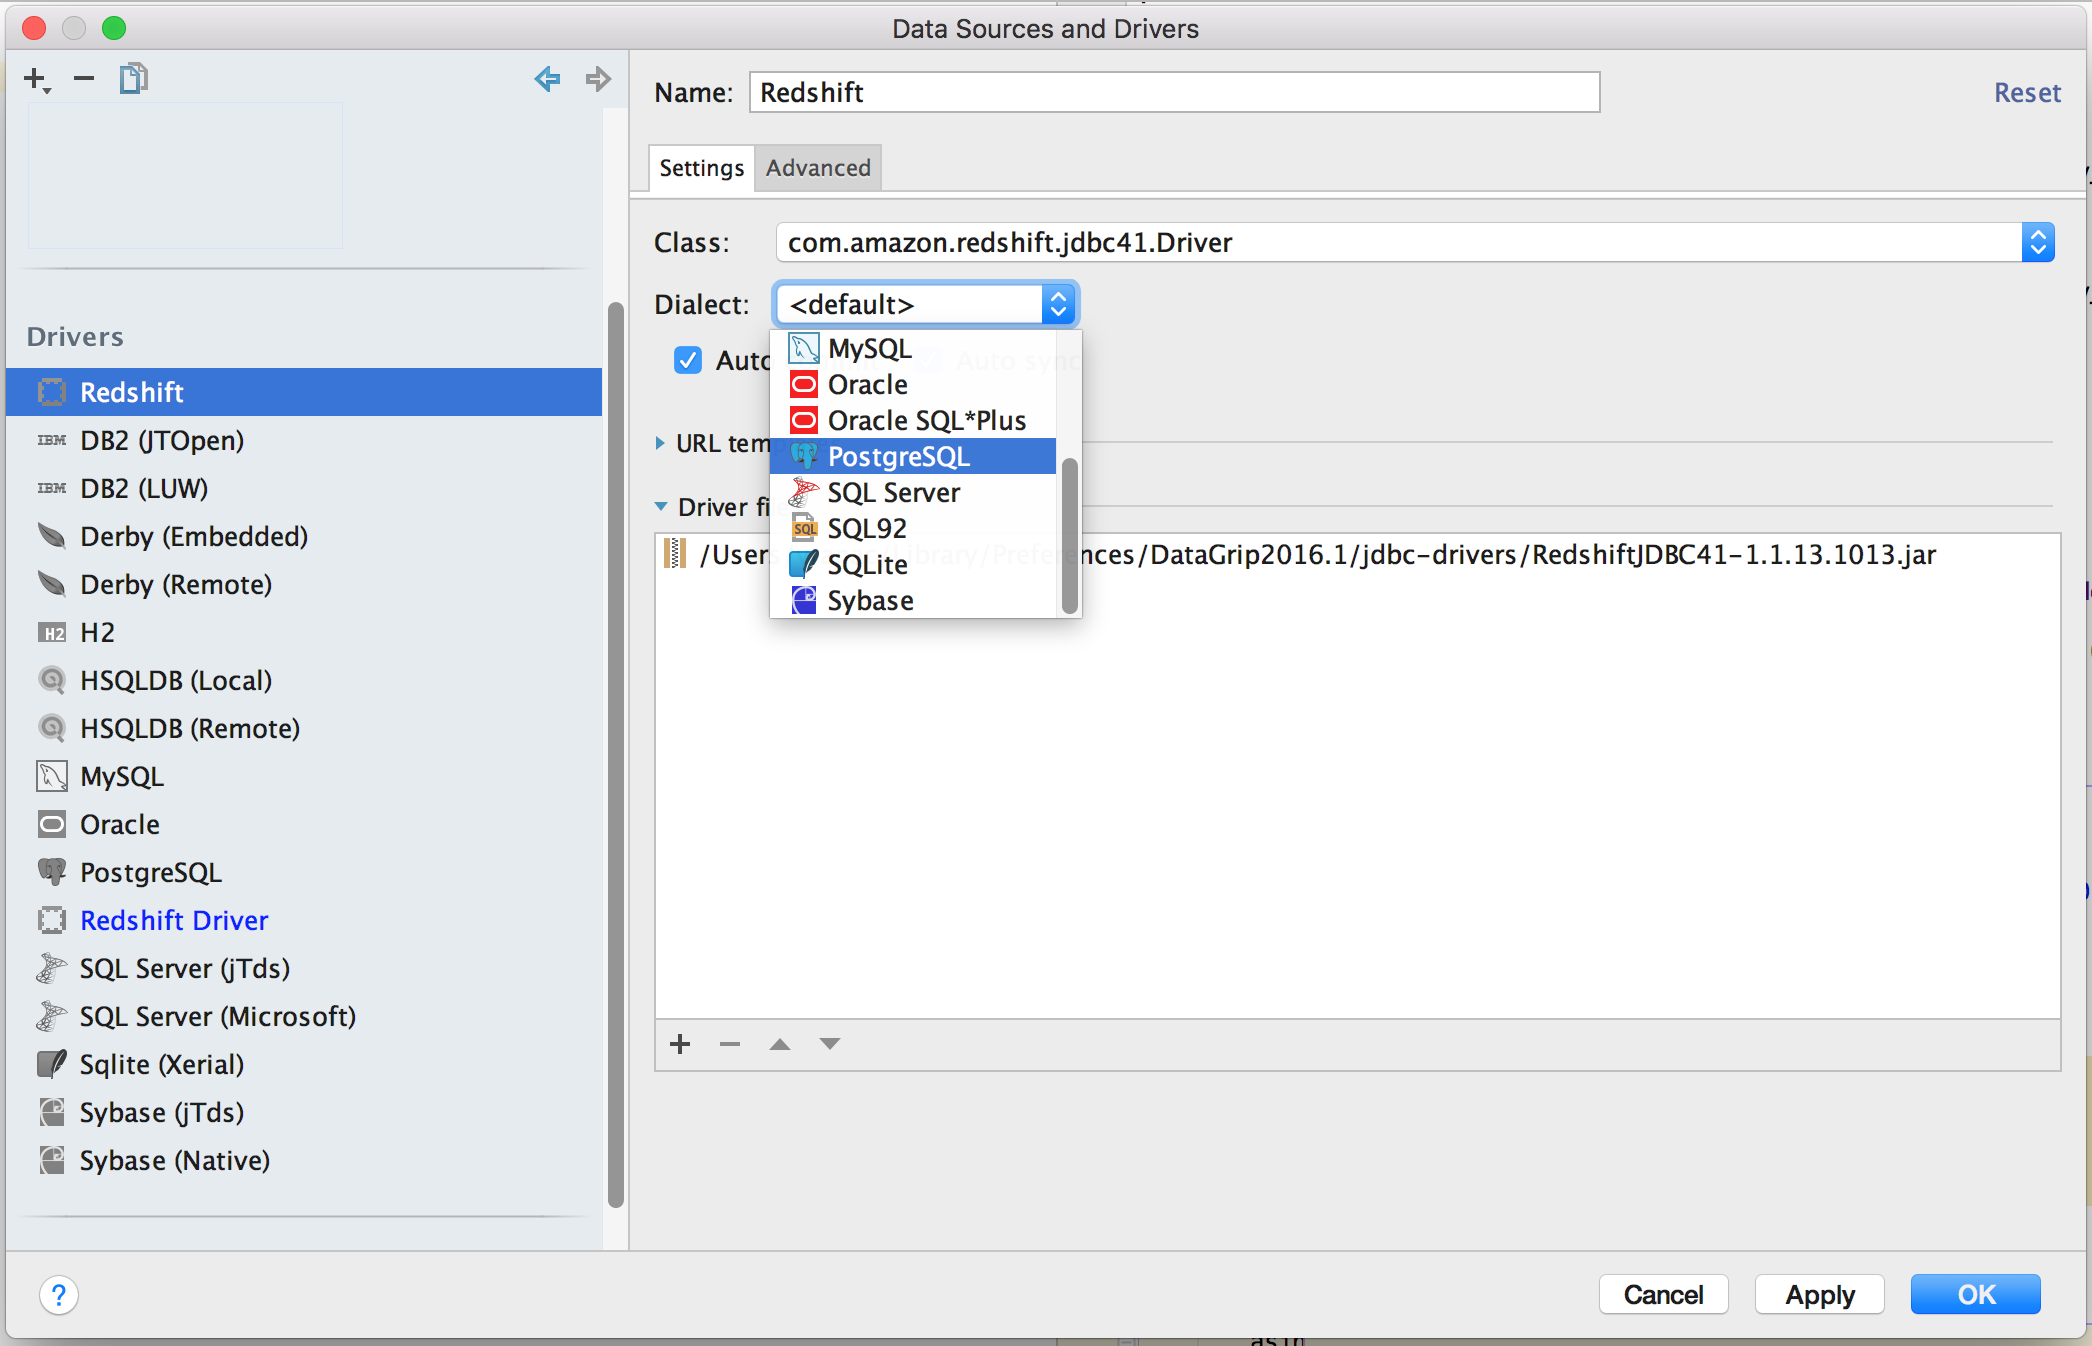 Connecting JetBrains DataGrip to Redshift